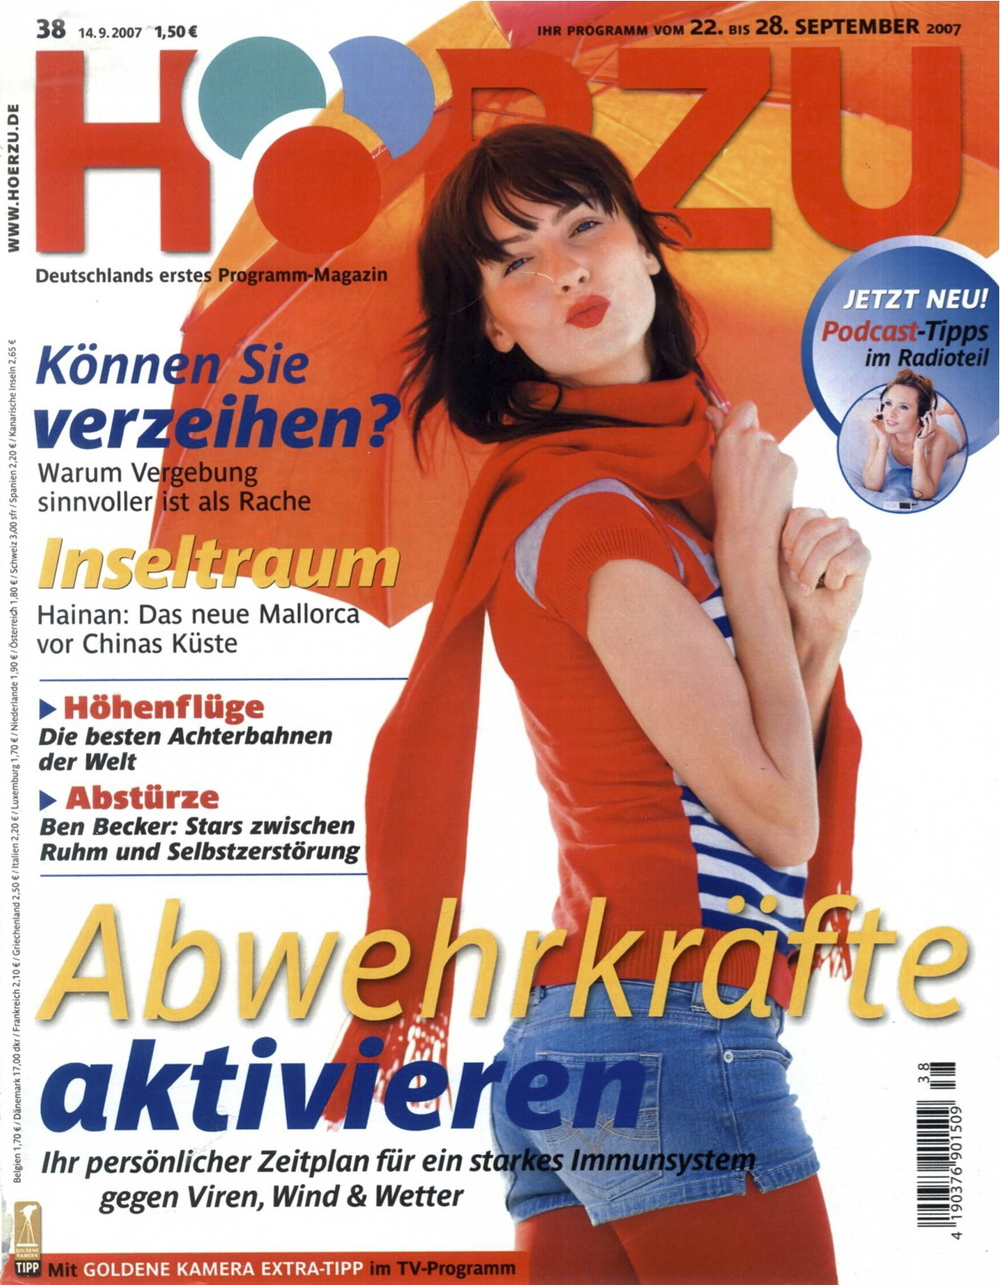 HZ_14.9.2007_Covers.jpg